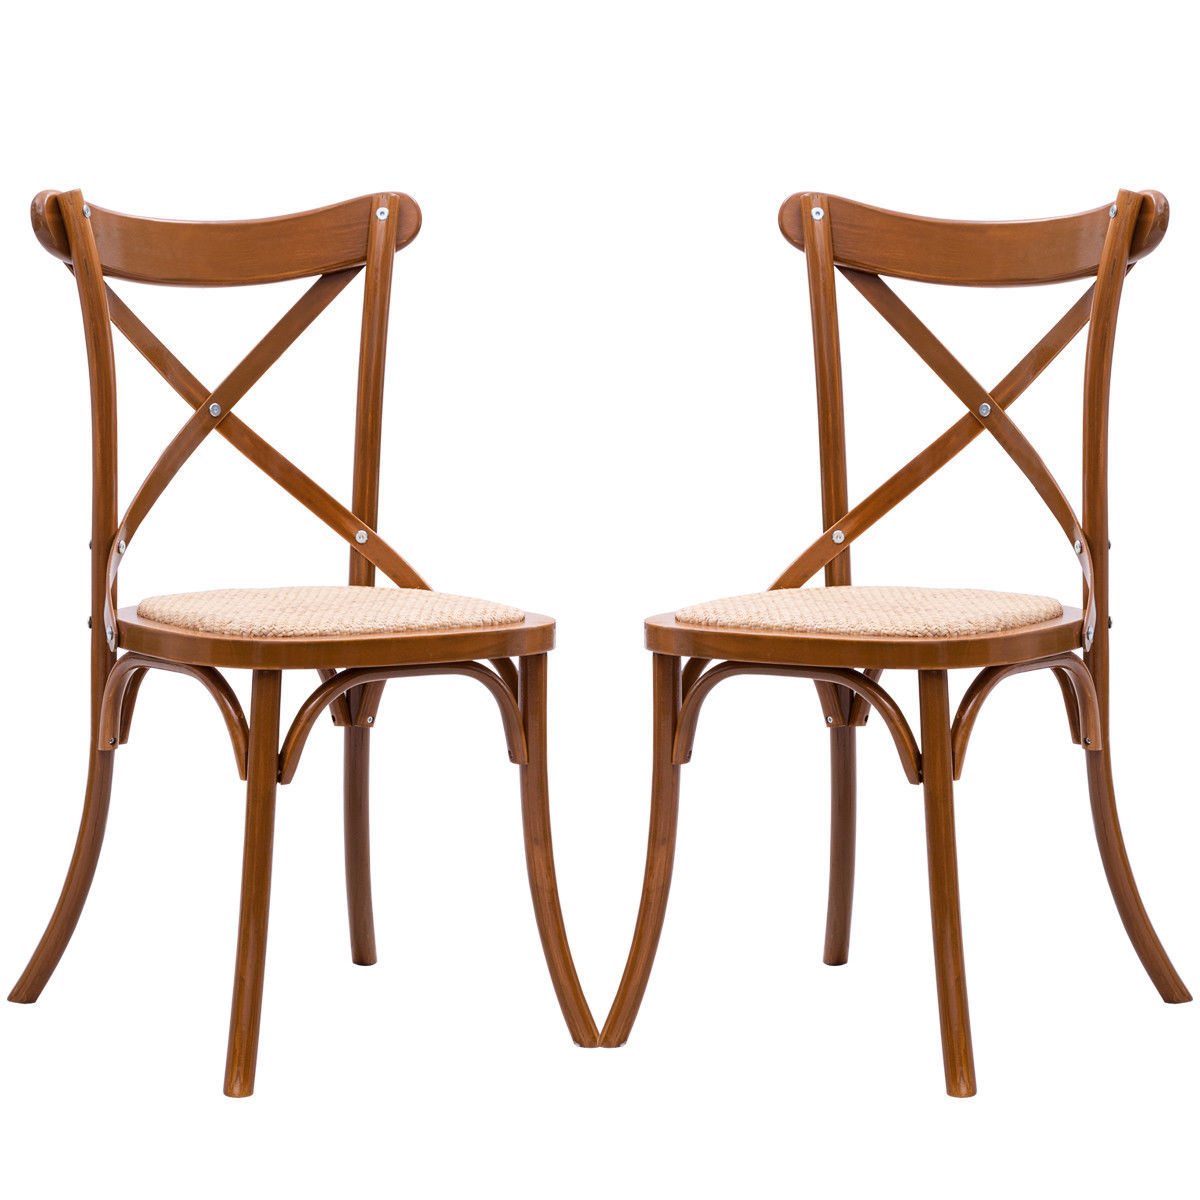 Gymax Set of 2 Cross Back Dining Side Chair Solid Wood Rattan Seat Modern Farmhouse